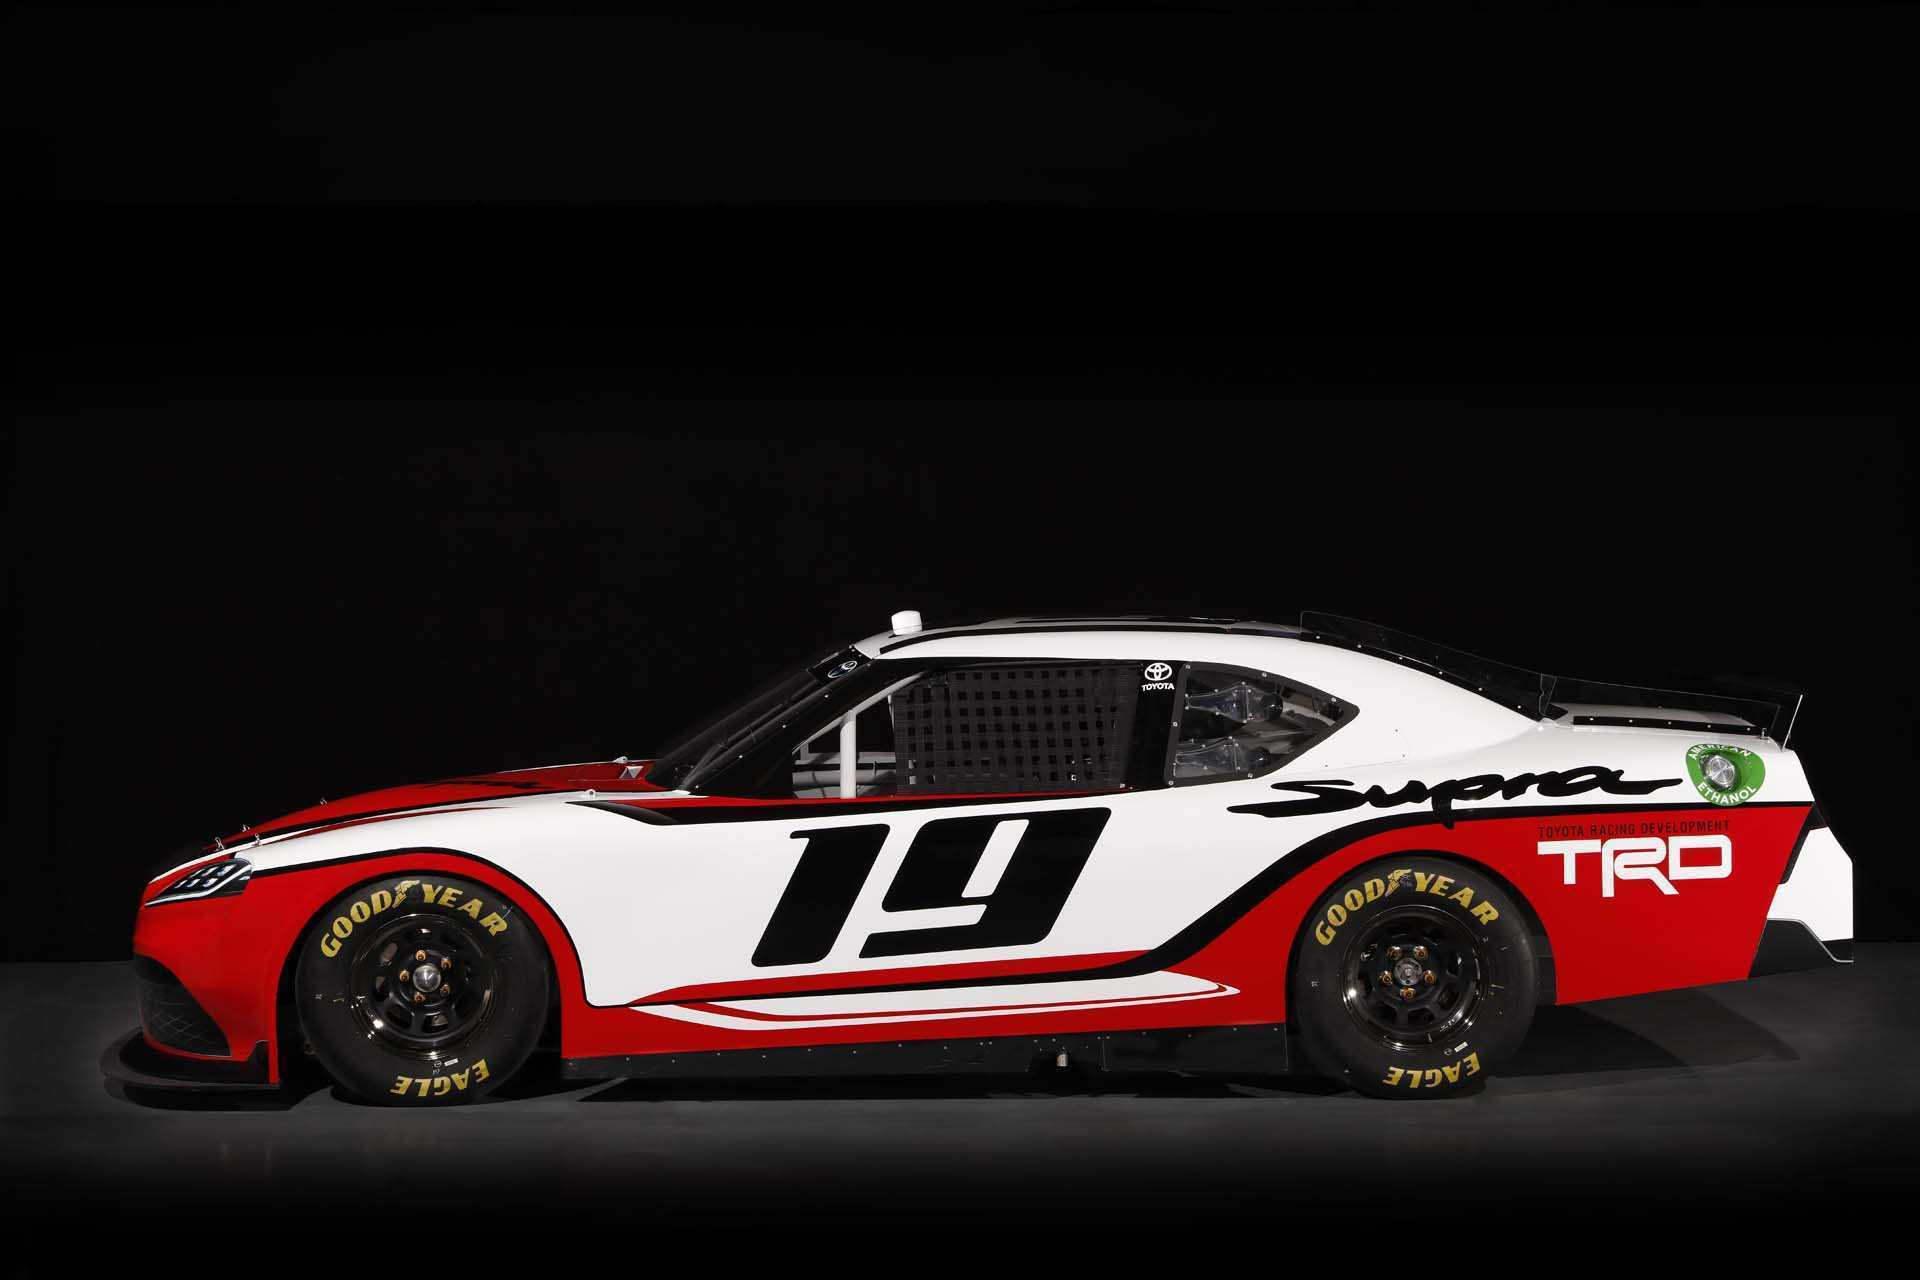 51 The Best Nissan Nascar 2020 Release Date and Concept